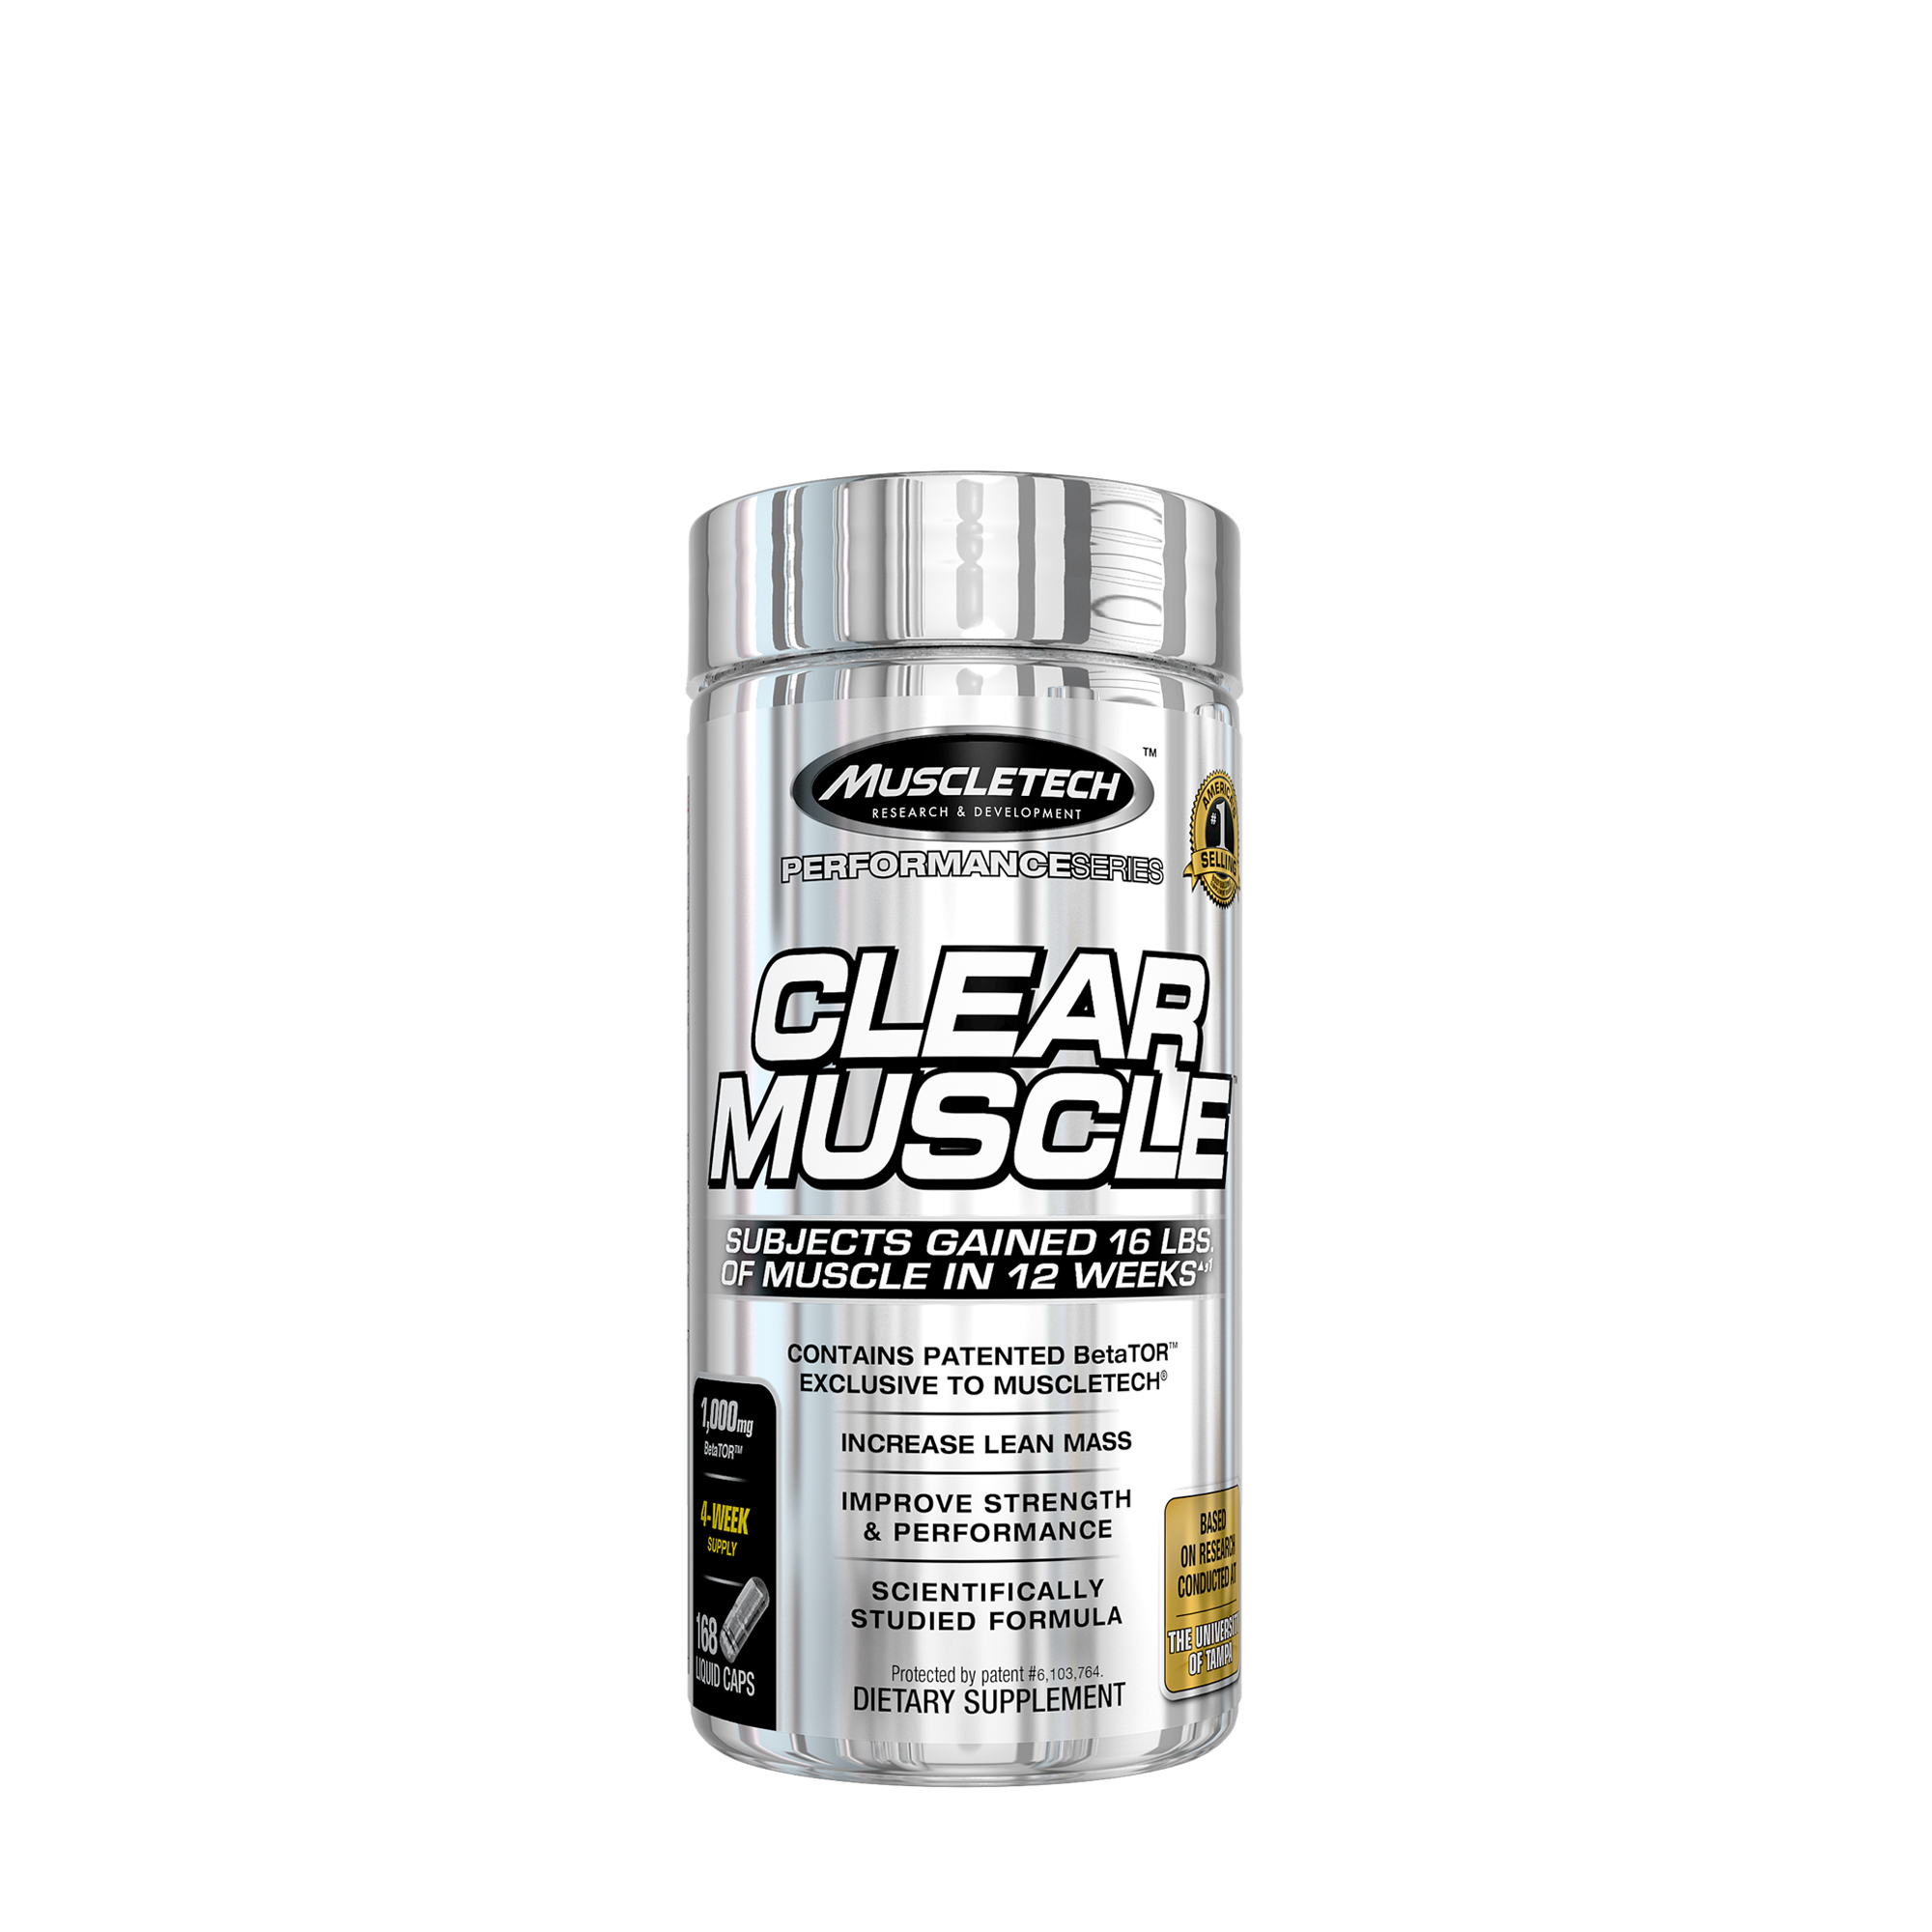 Gnc Products To Make You Gain Weight – Blog Dandk